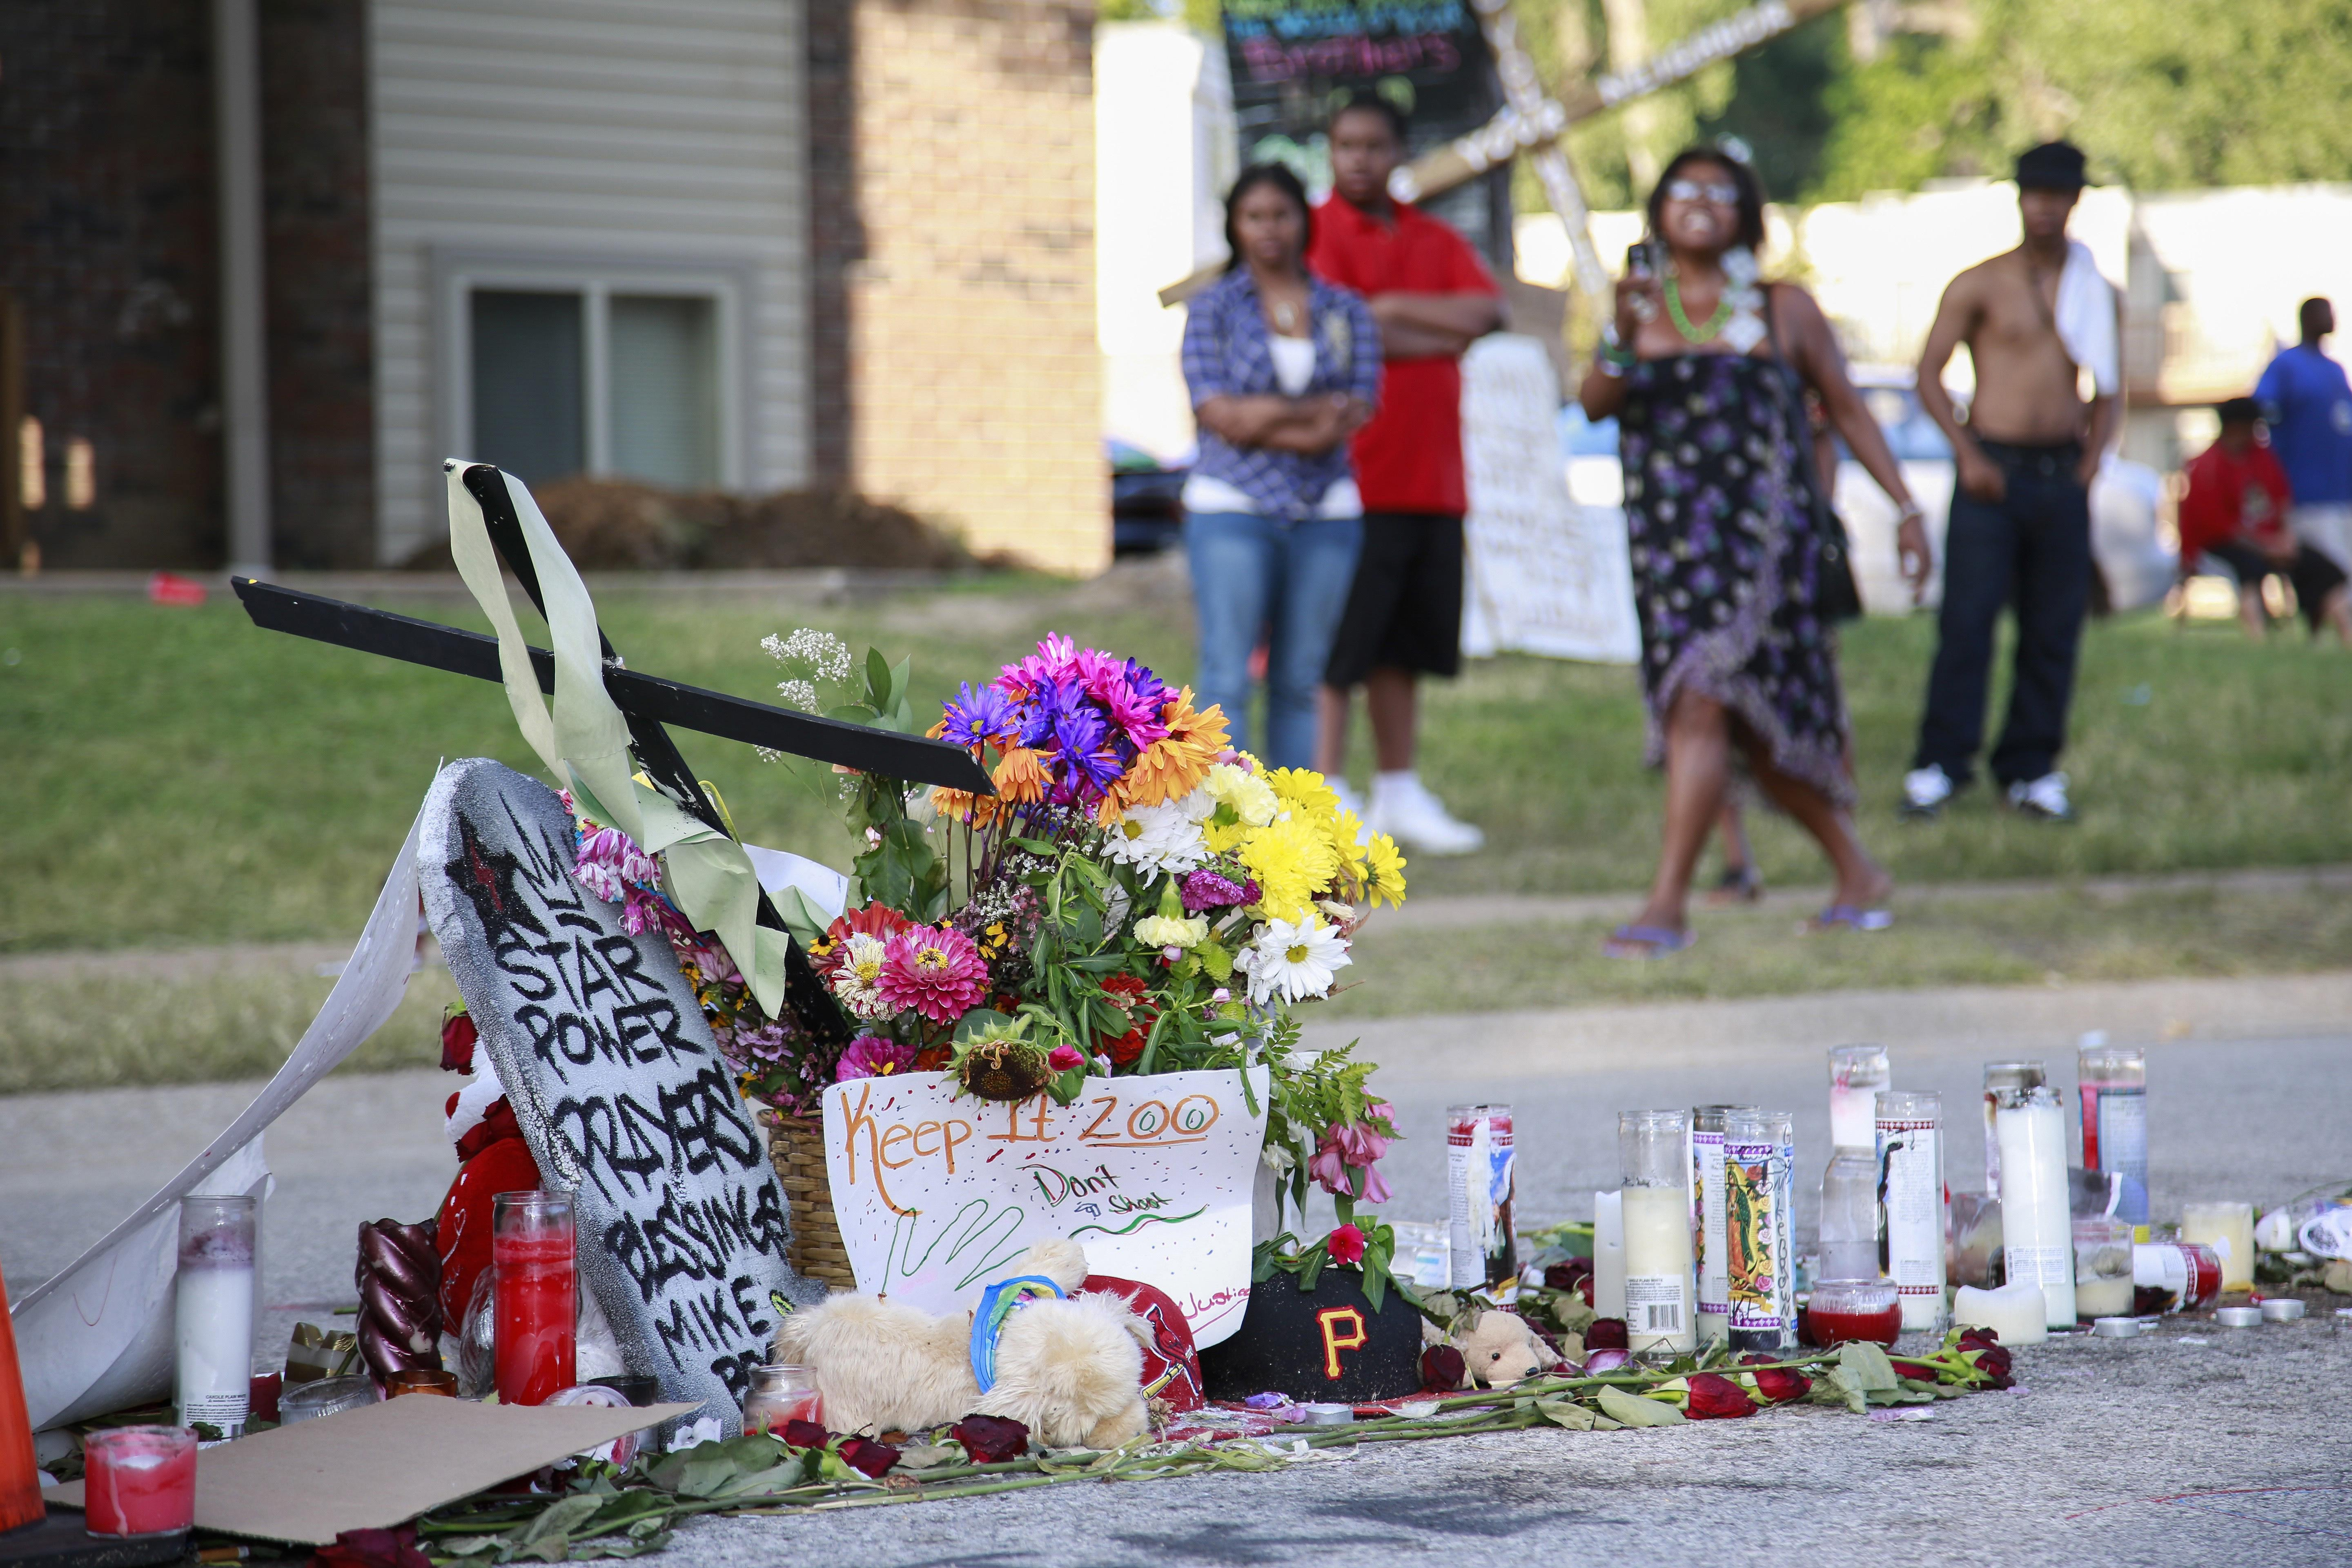 Protests after 23-year-old man killed by police in St Louis